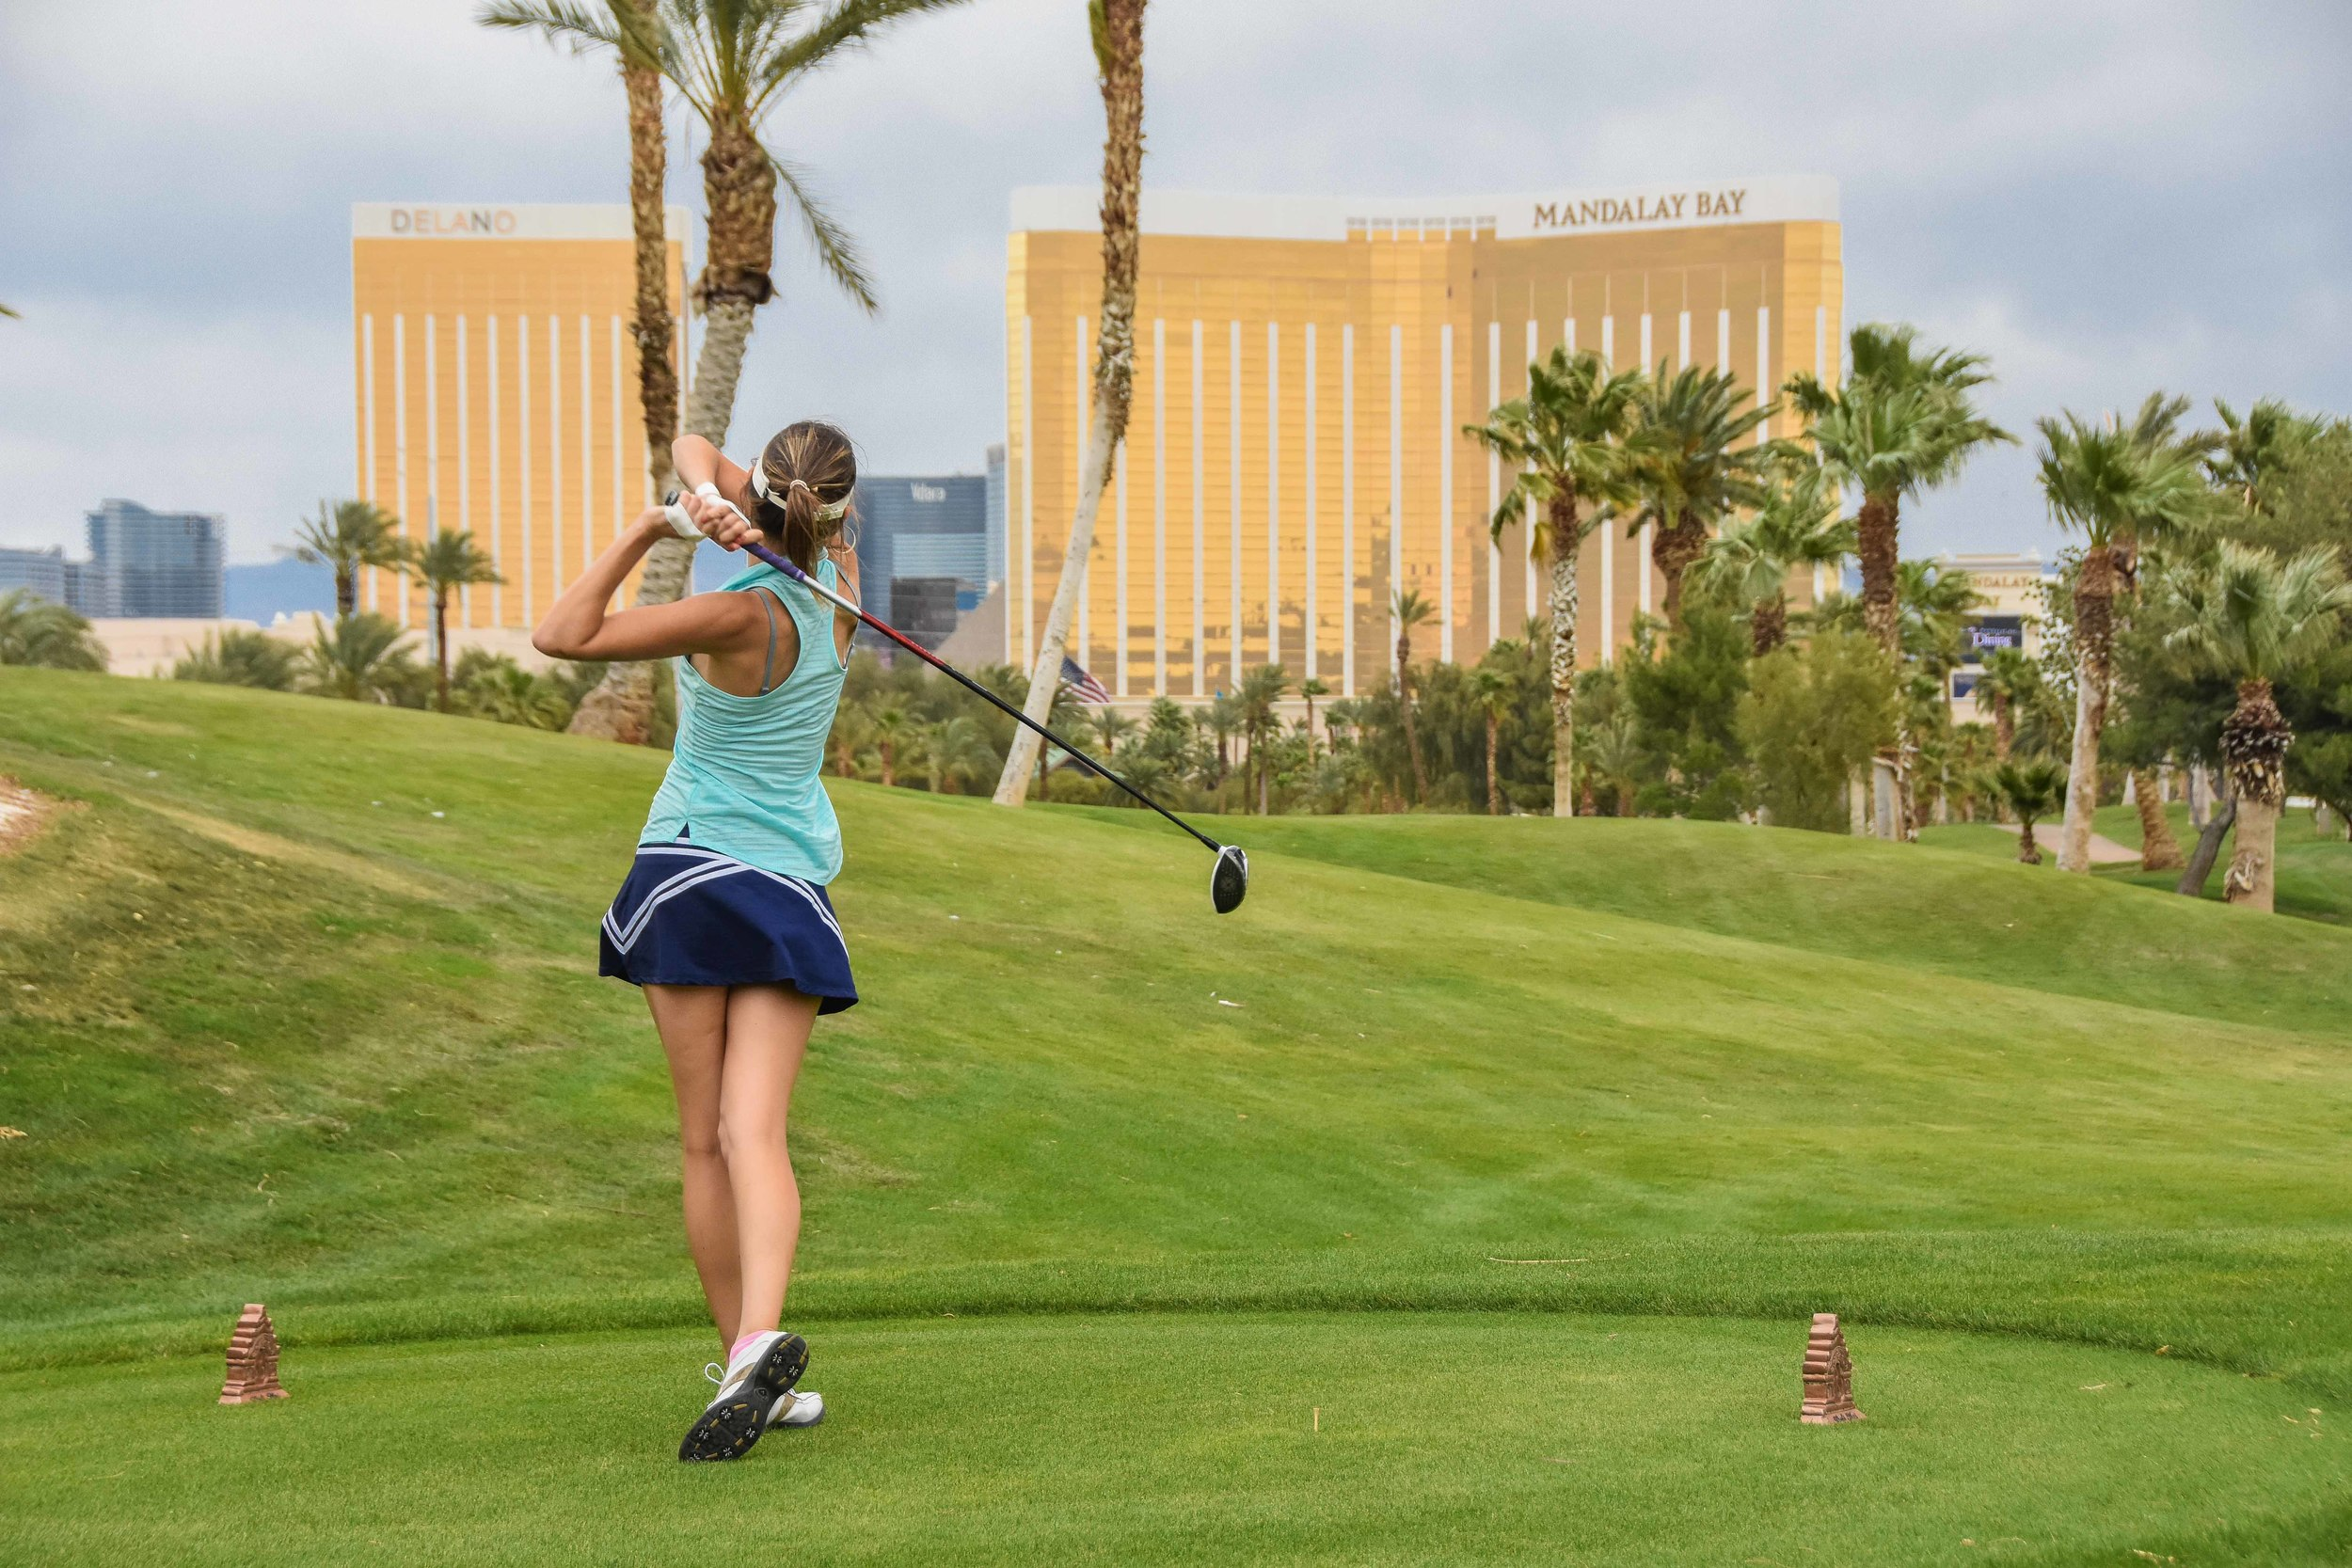 Even though Sarah Moodie  (Smooderoo)  weighs about 85 pounds, she actually drove this one over the Mandalay Bay Resort and Casino.